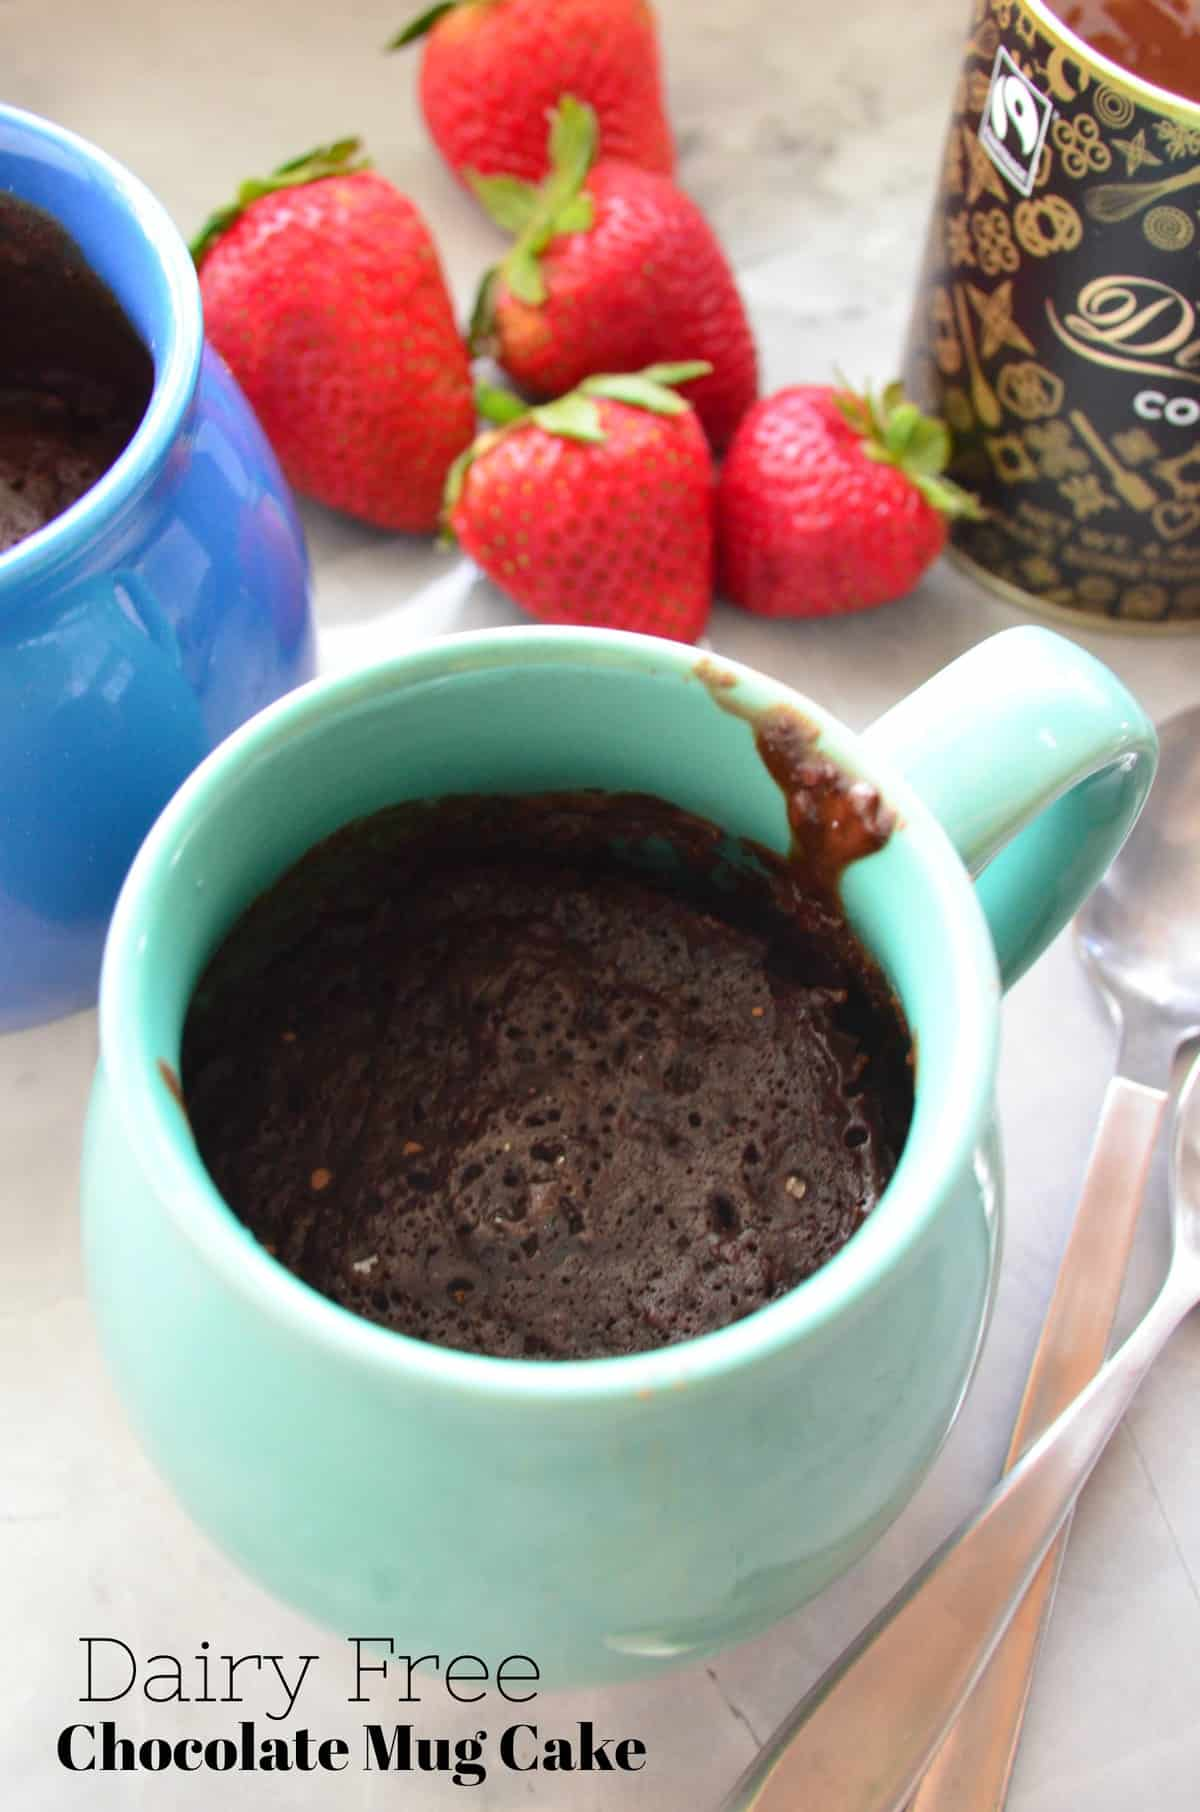 closeup of turquoise mug filled with brown cake with strawberries blurred in background and title text.